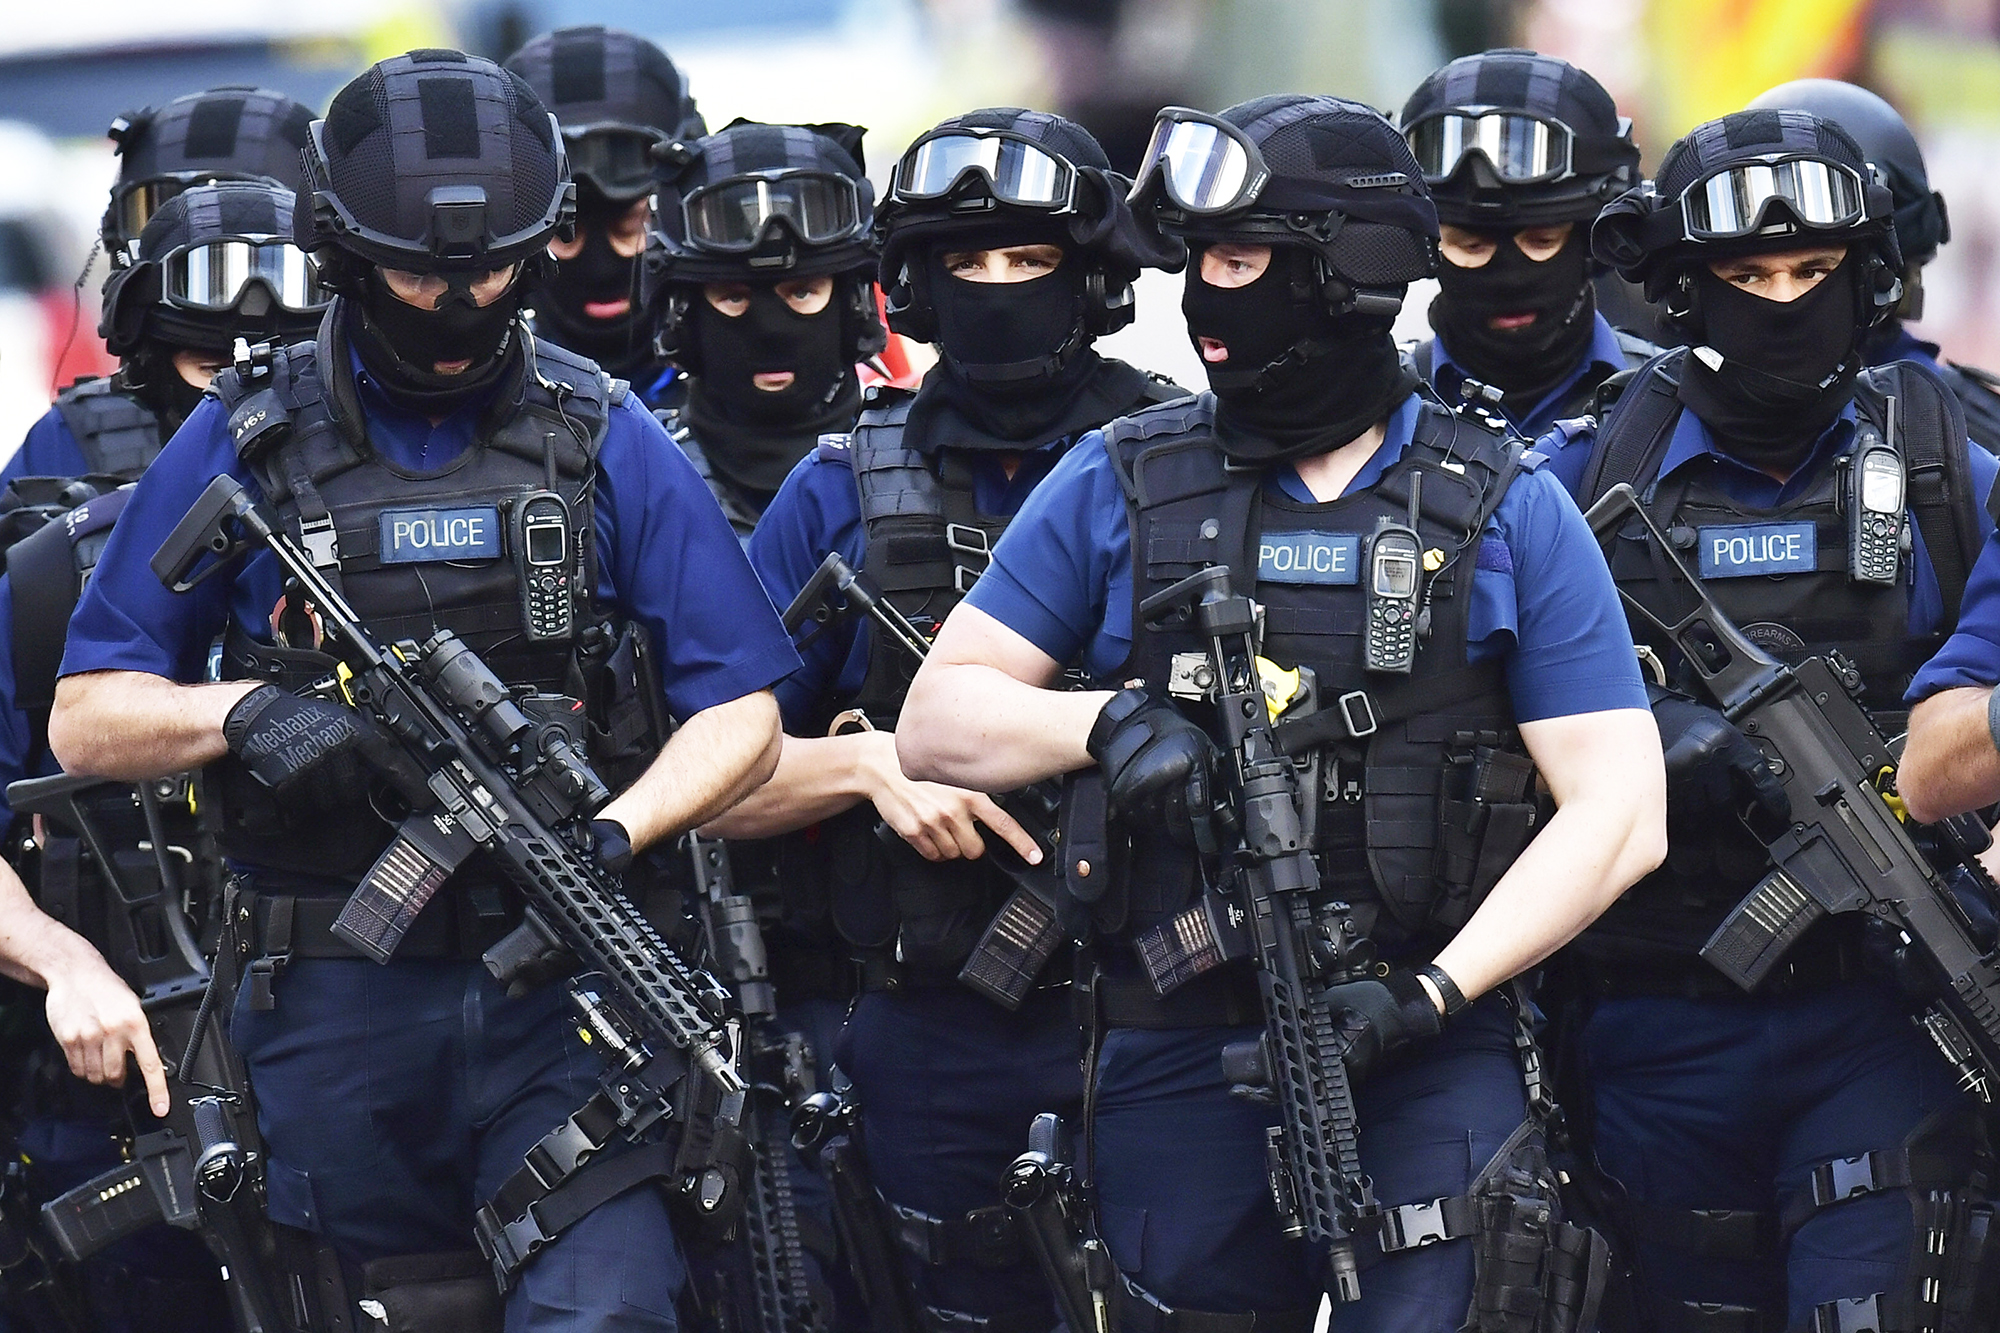 Armed police on St. Thomas Street, near the scene of a terrorist incident in London, on June 4, 2017.